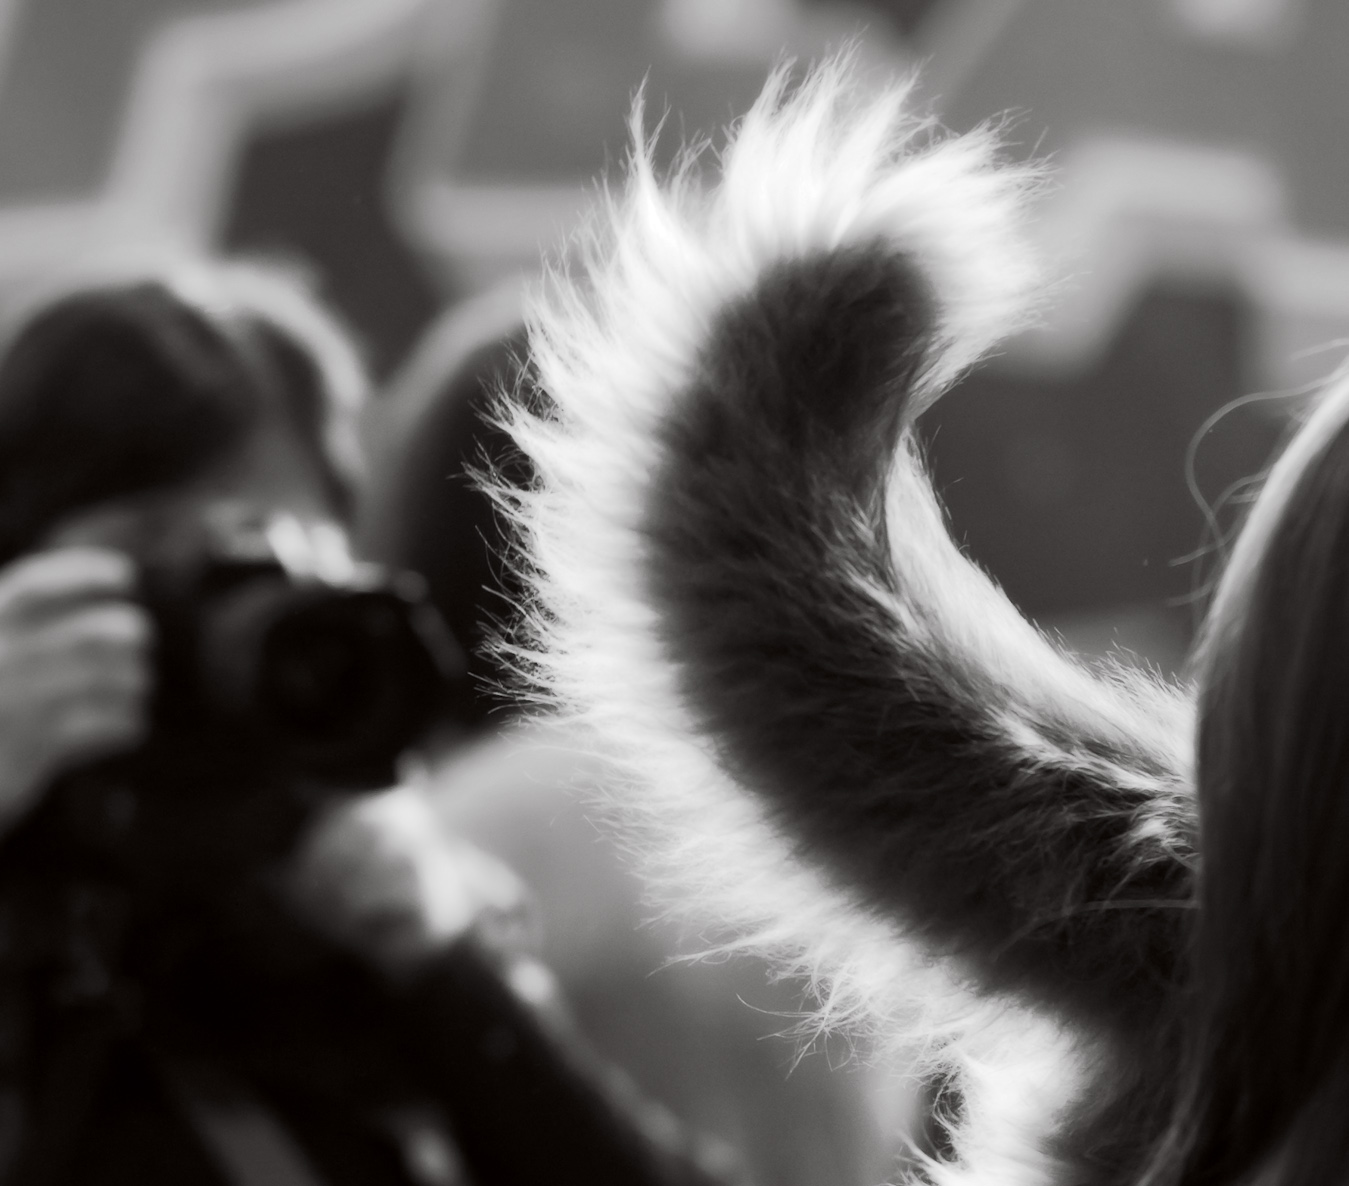 the tail, photo 189112, 2012-03-03